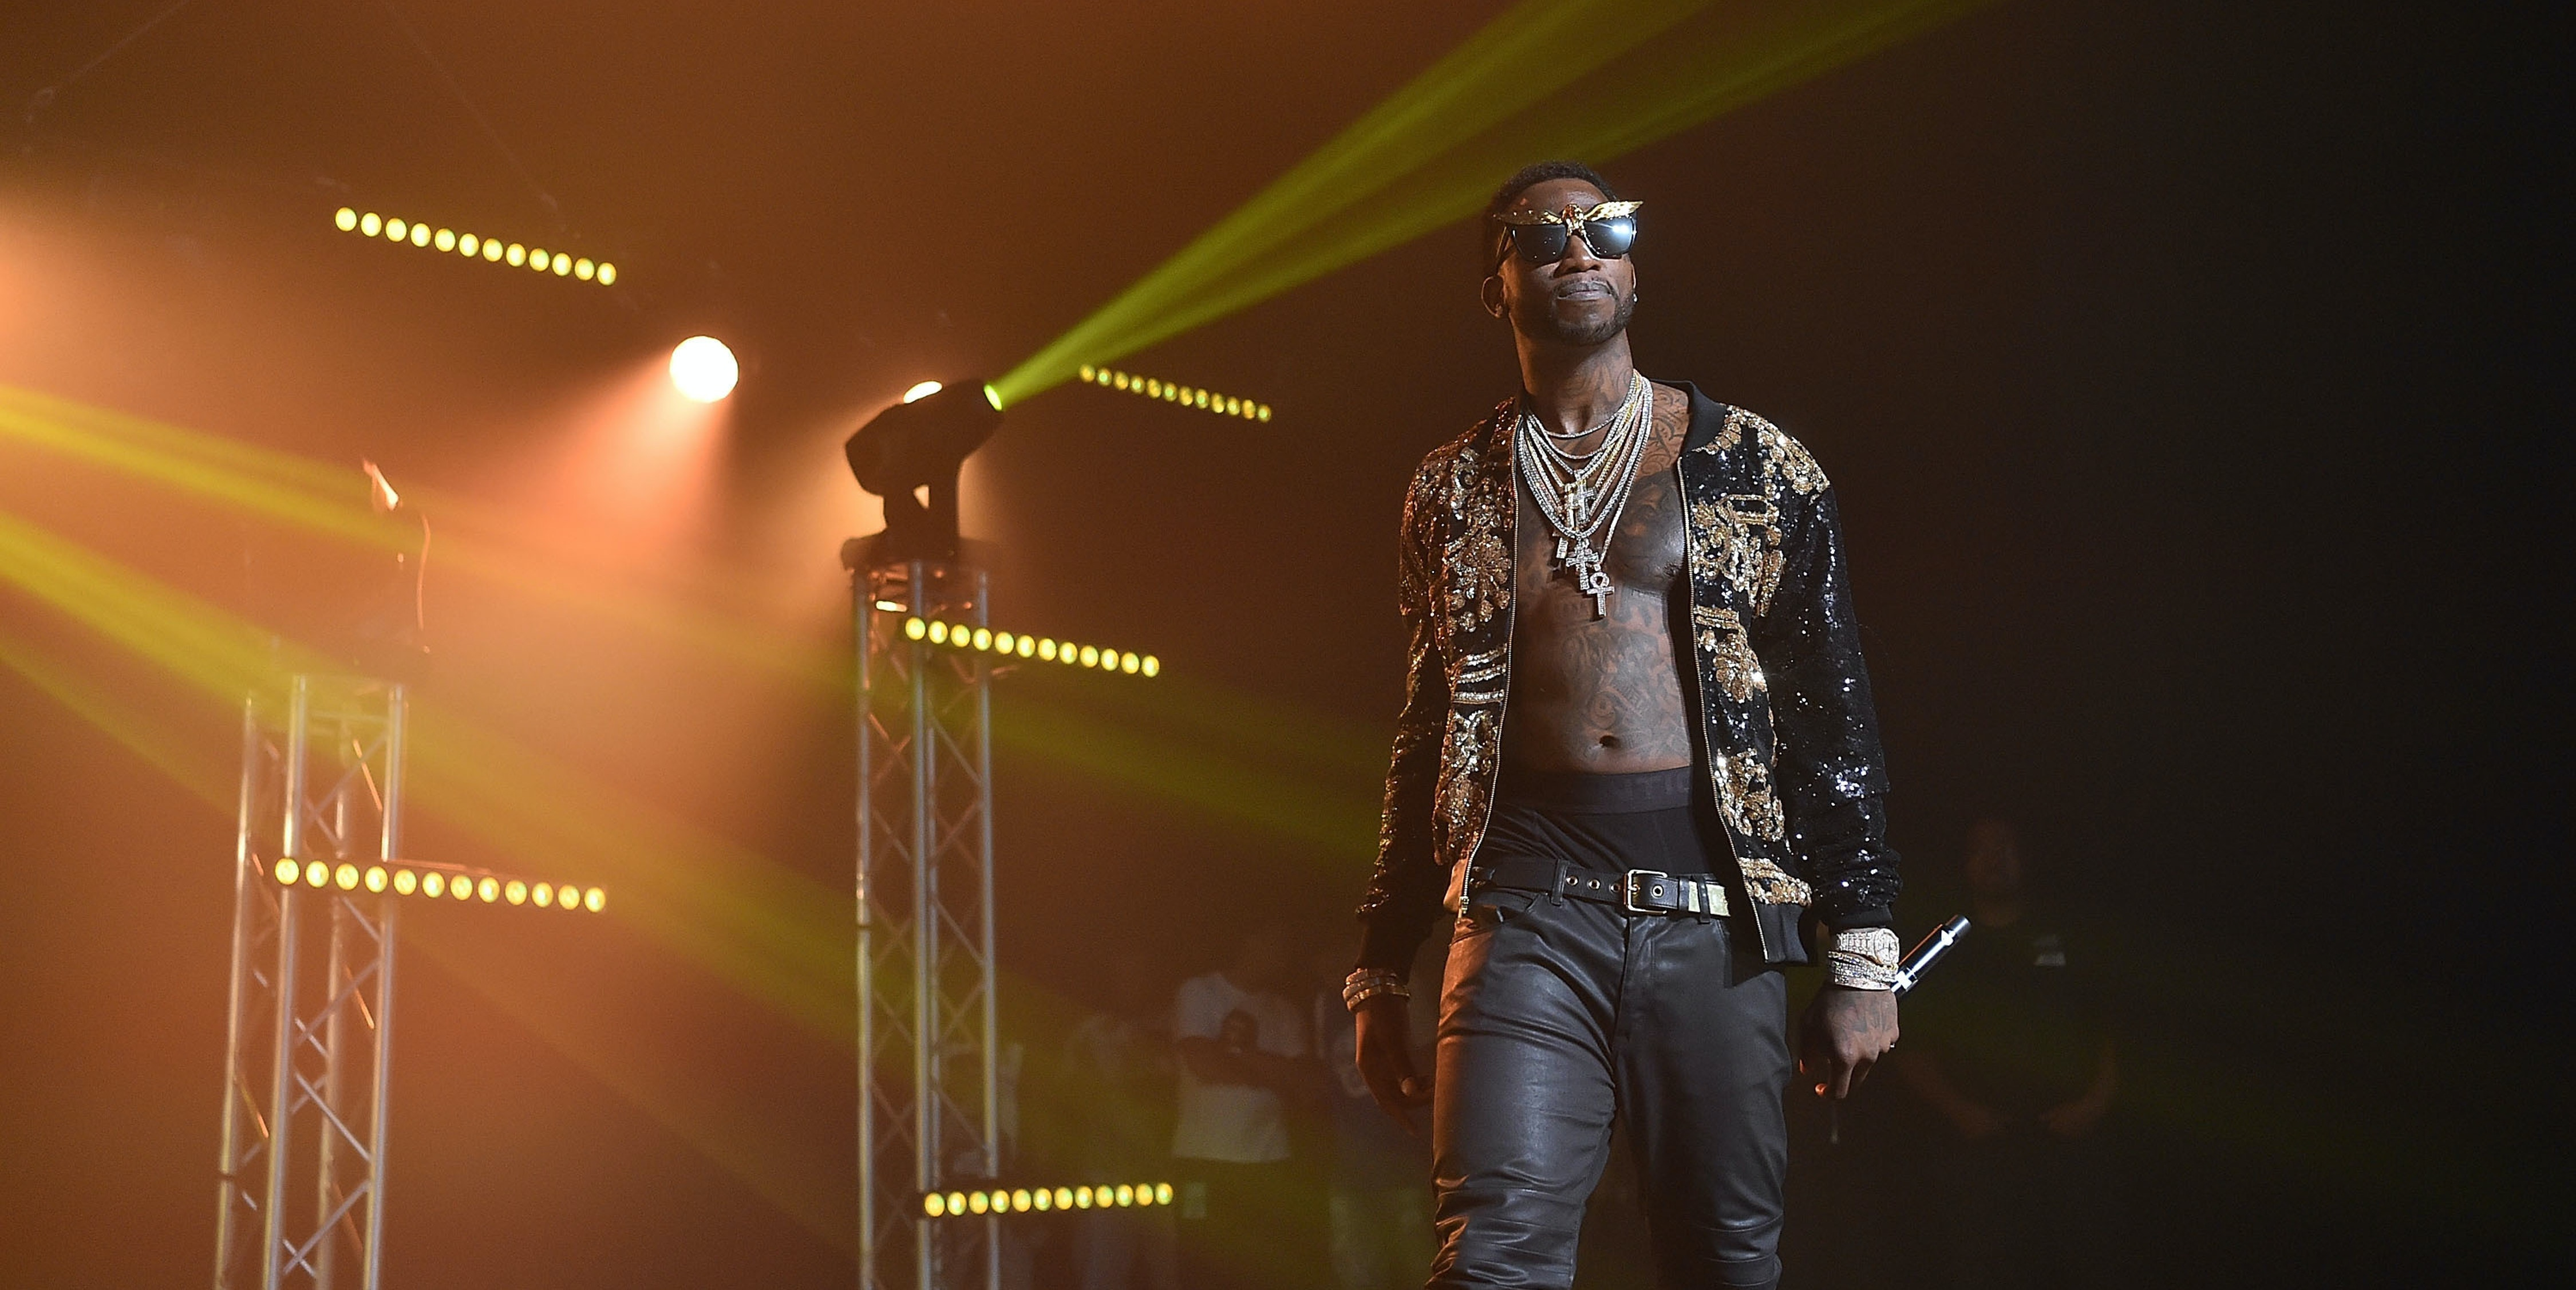 ATLANTA, GA - JULY 22:  Gucci Mane performs on stage at Gucci and Friends Homecoming Concert at Fox Theatre on July 22, 2016 in Atlanta, Georgia.  (Photo by Paras Griffin/Getty Images for Atlantic Records)